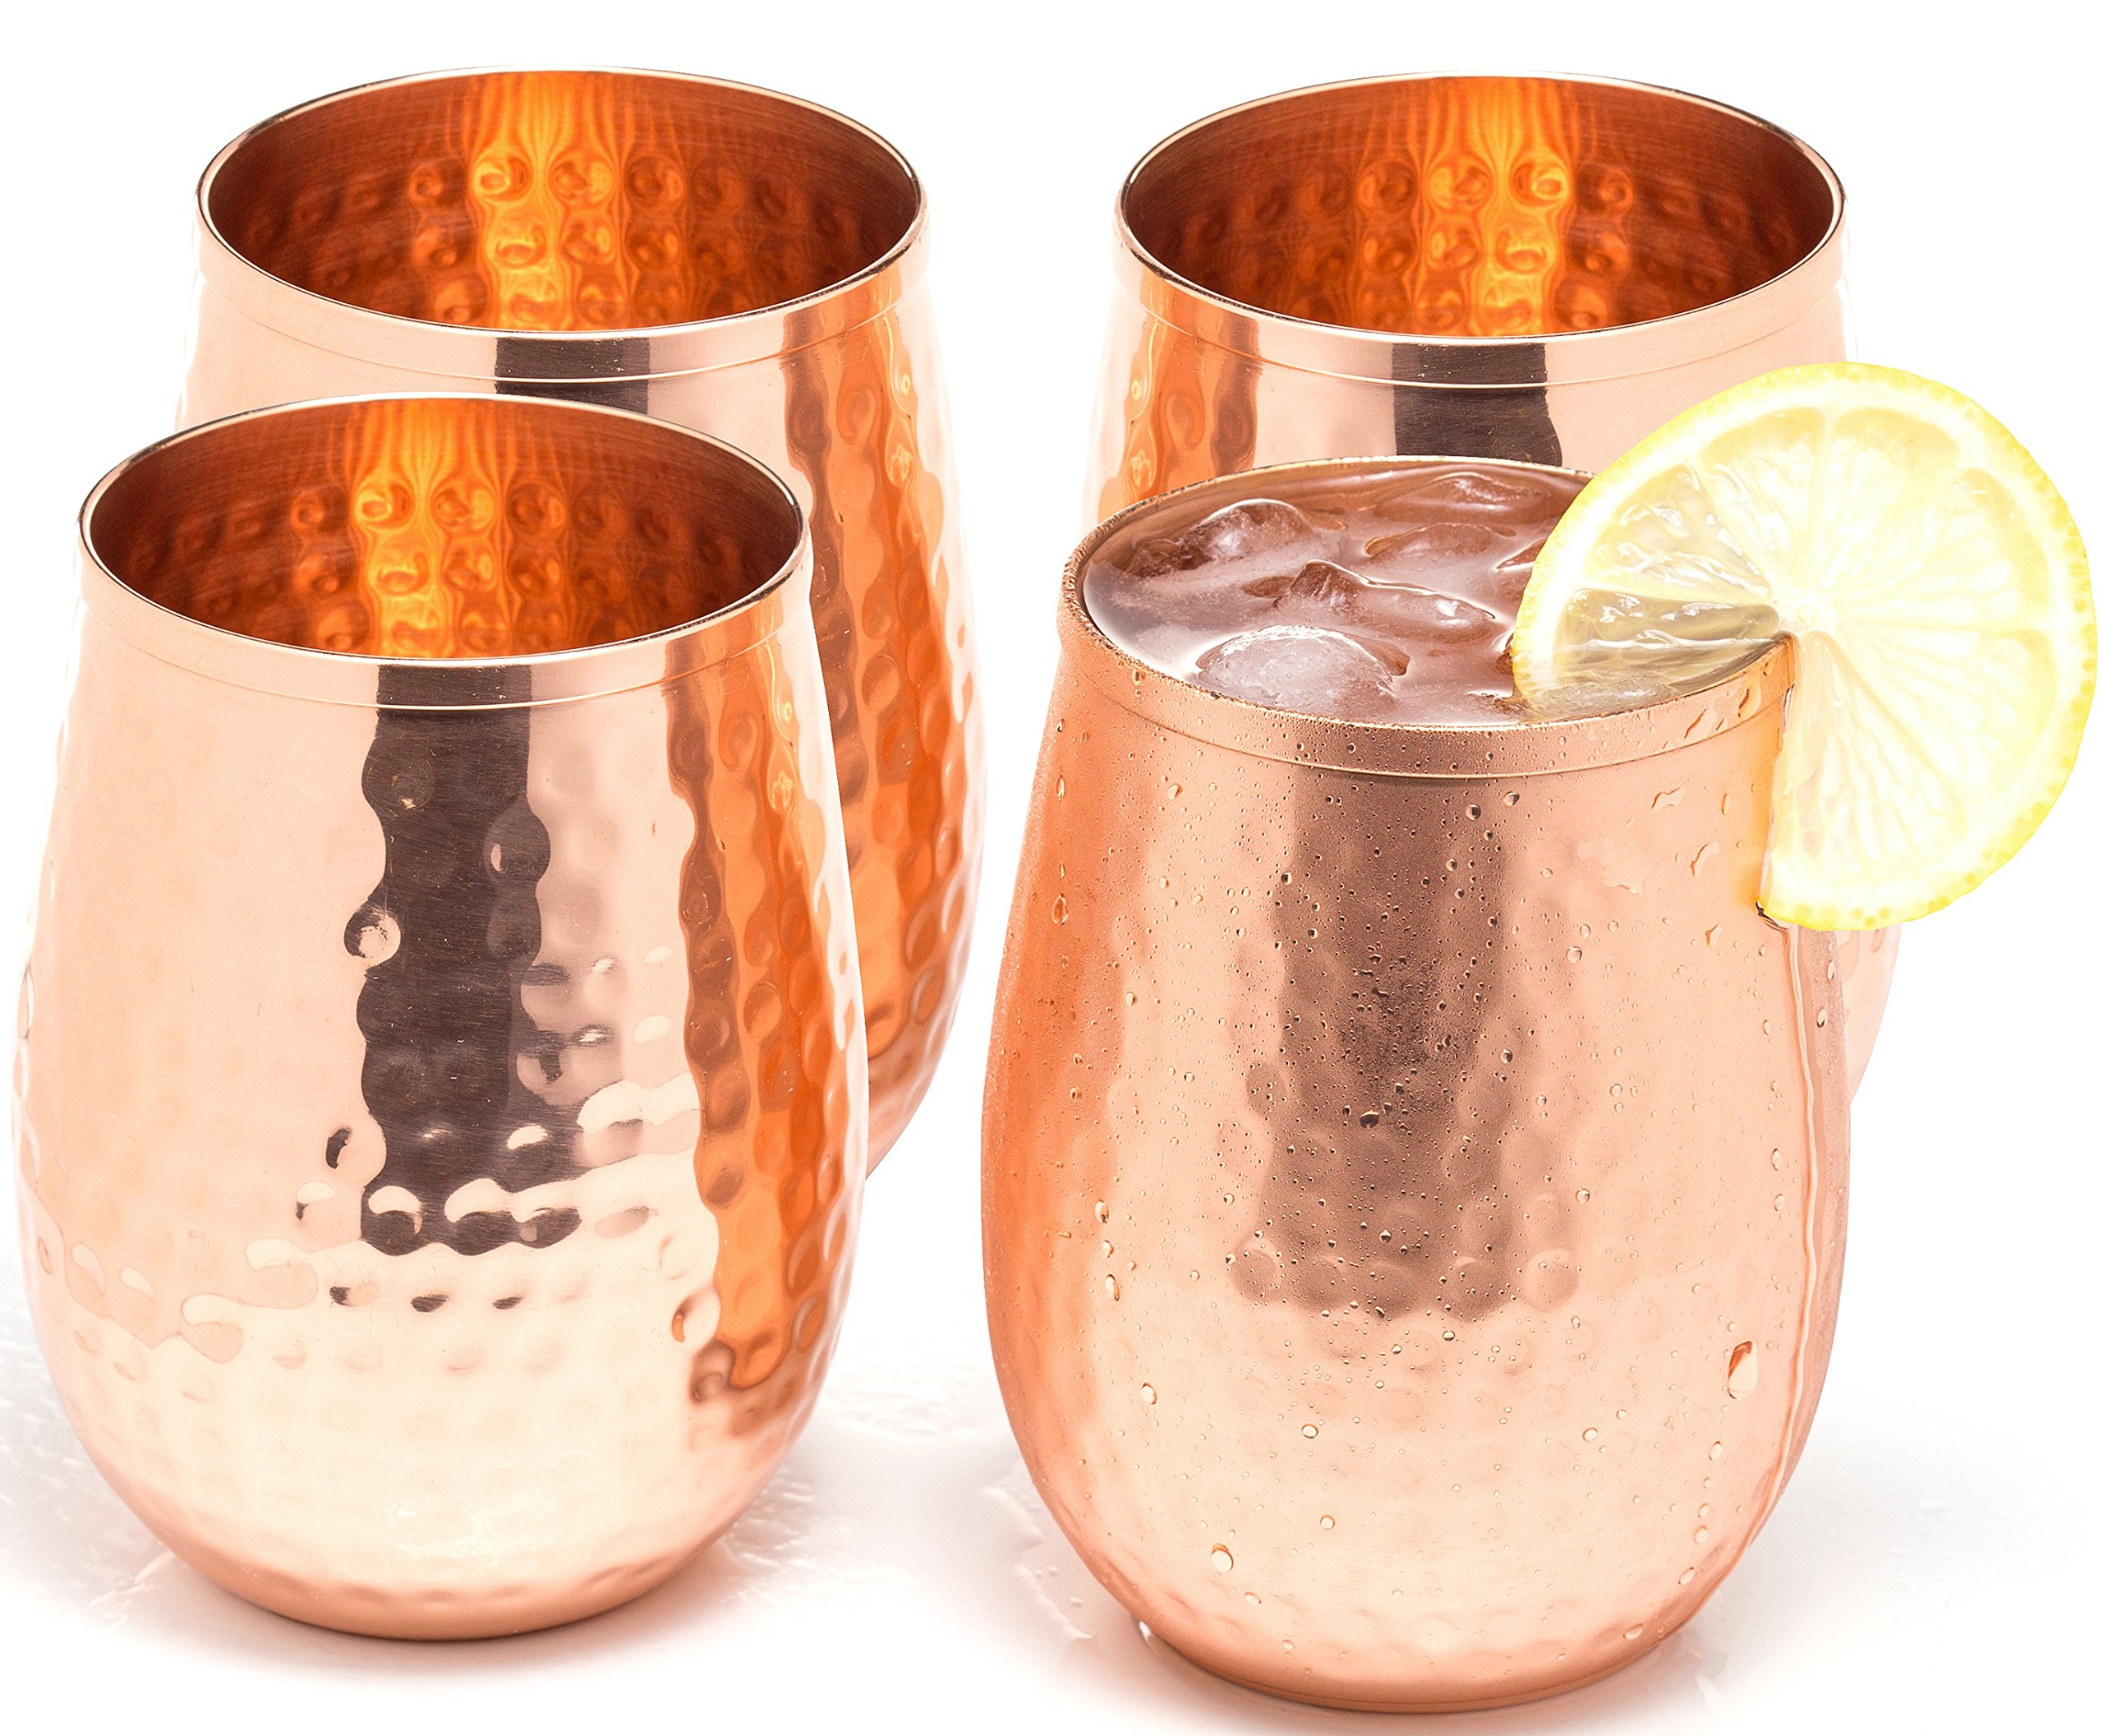 Copper wine glasses set of 4 - 17oz gleaming 100% solid hammered copper stemless wine cups - a perfect gift set for men and women - great copper tumblers for red or white wine and Moscow mules.